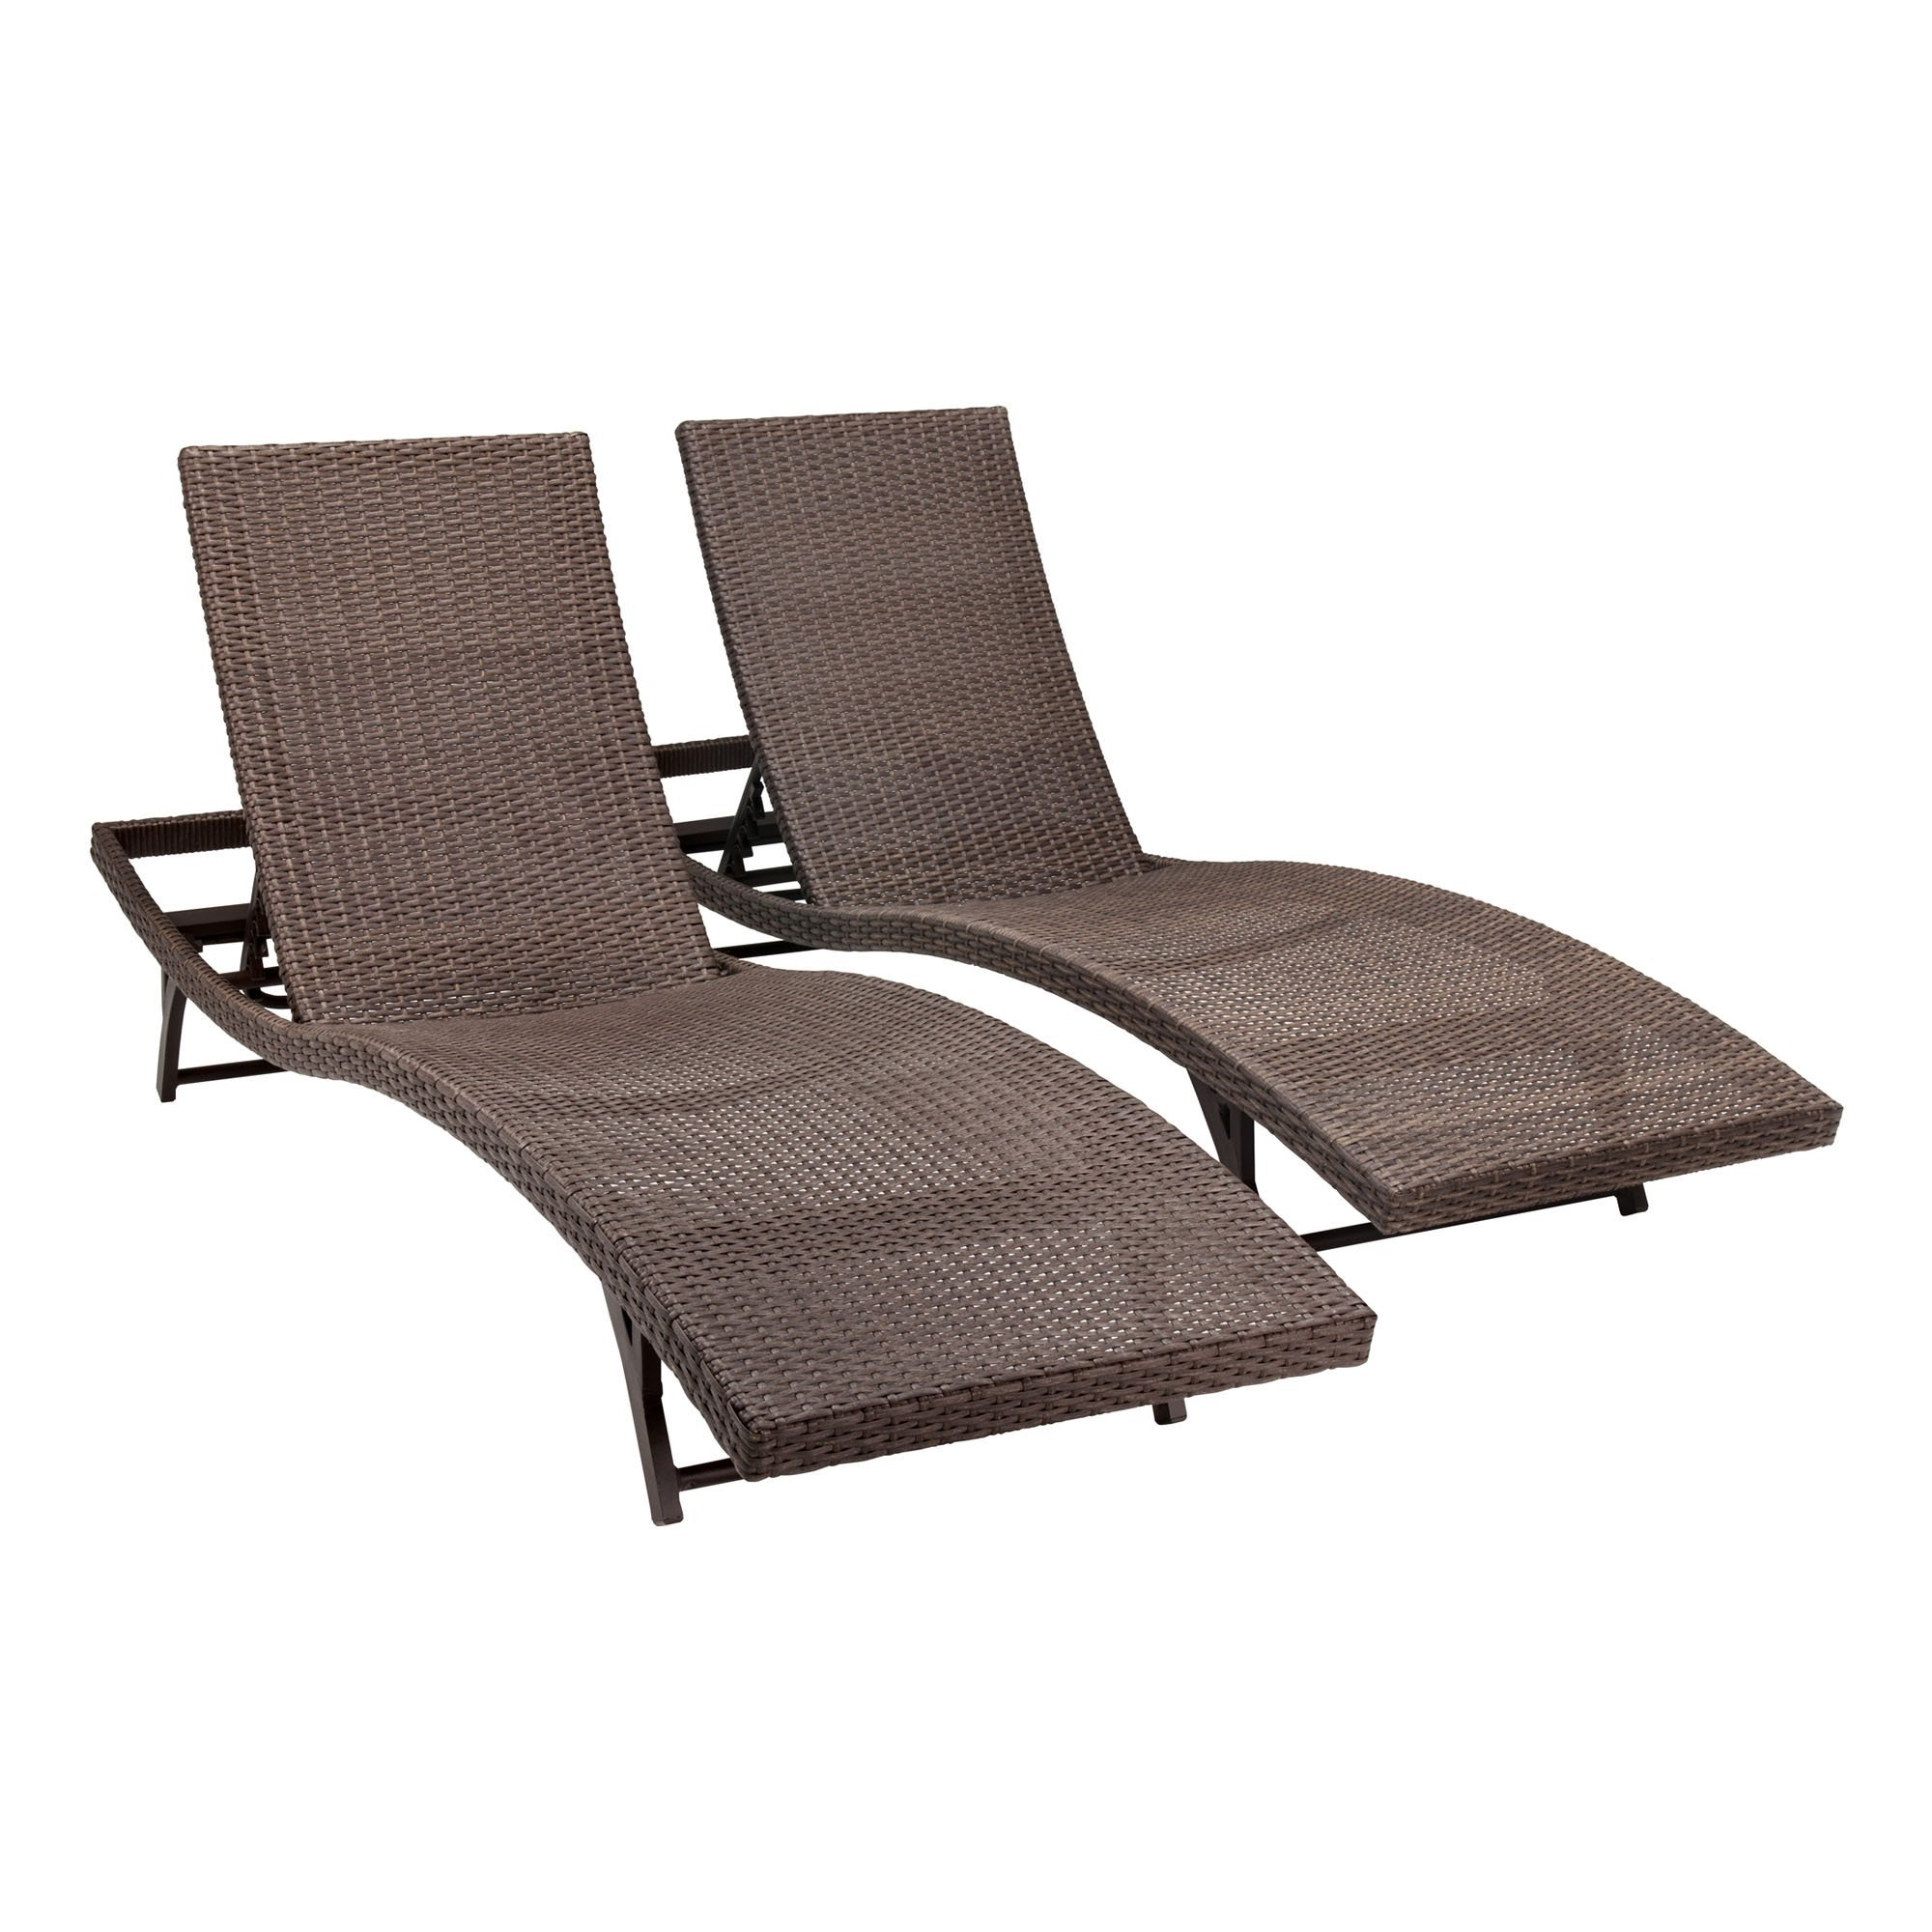 Best Chaise Lounge Chairs Top 15 Of Chaise Lounge Reclining Chairs For Outdoor